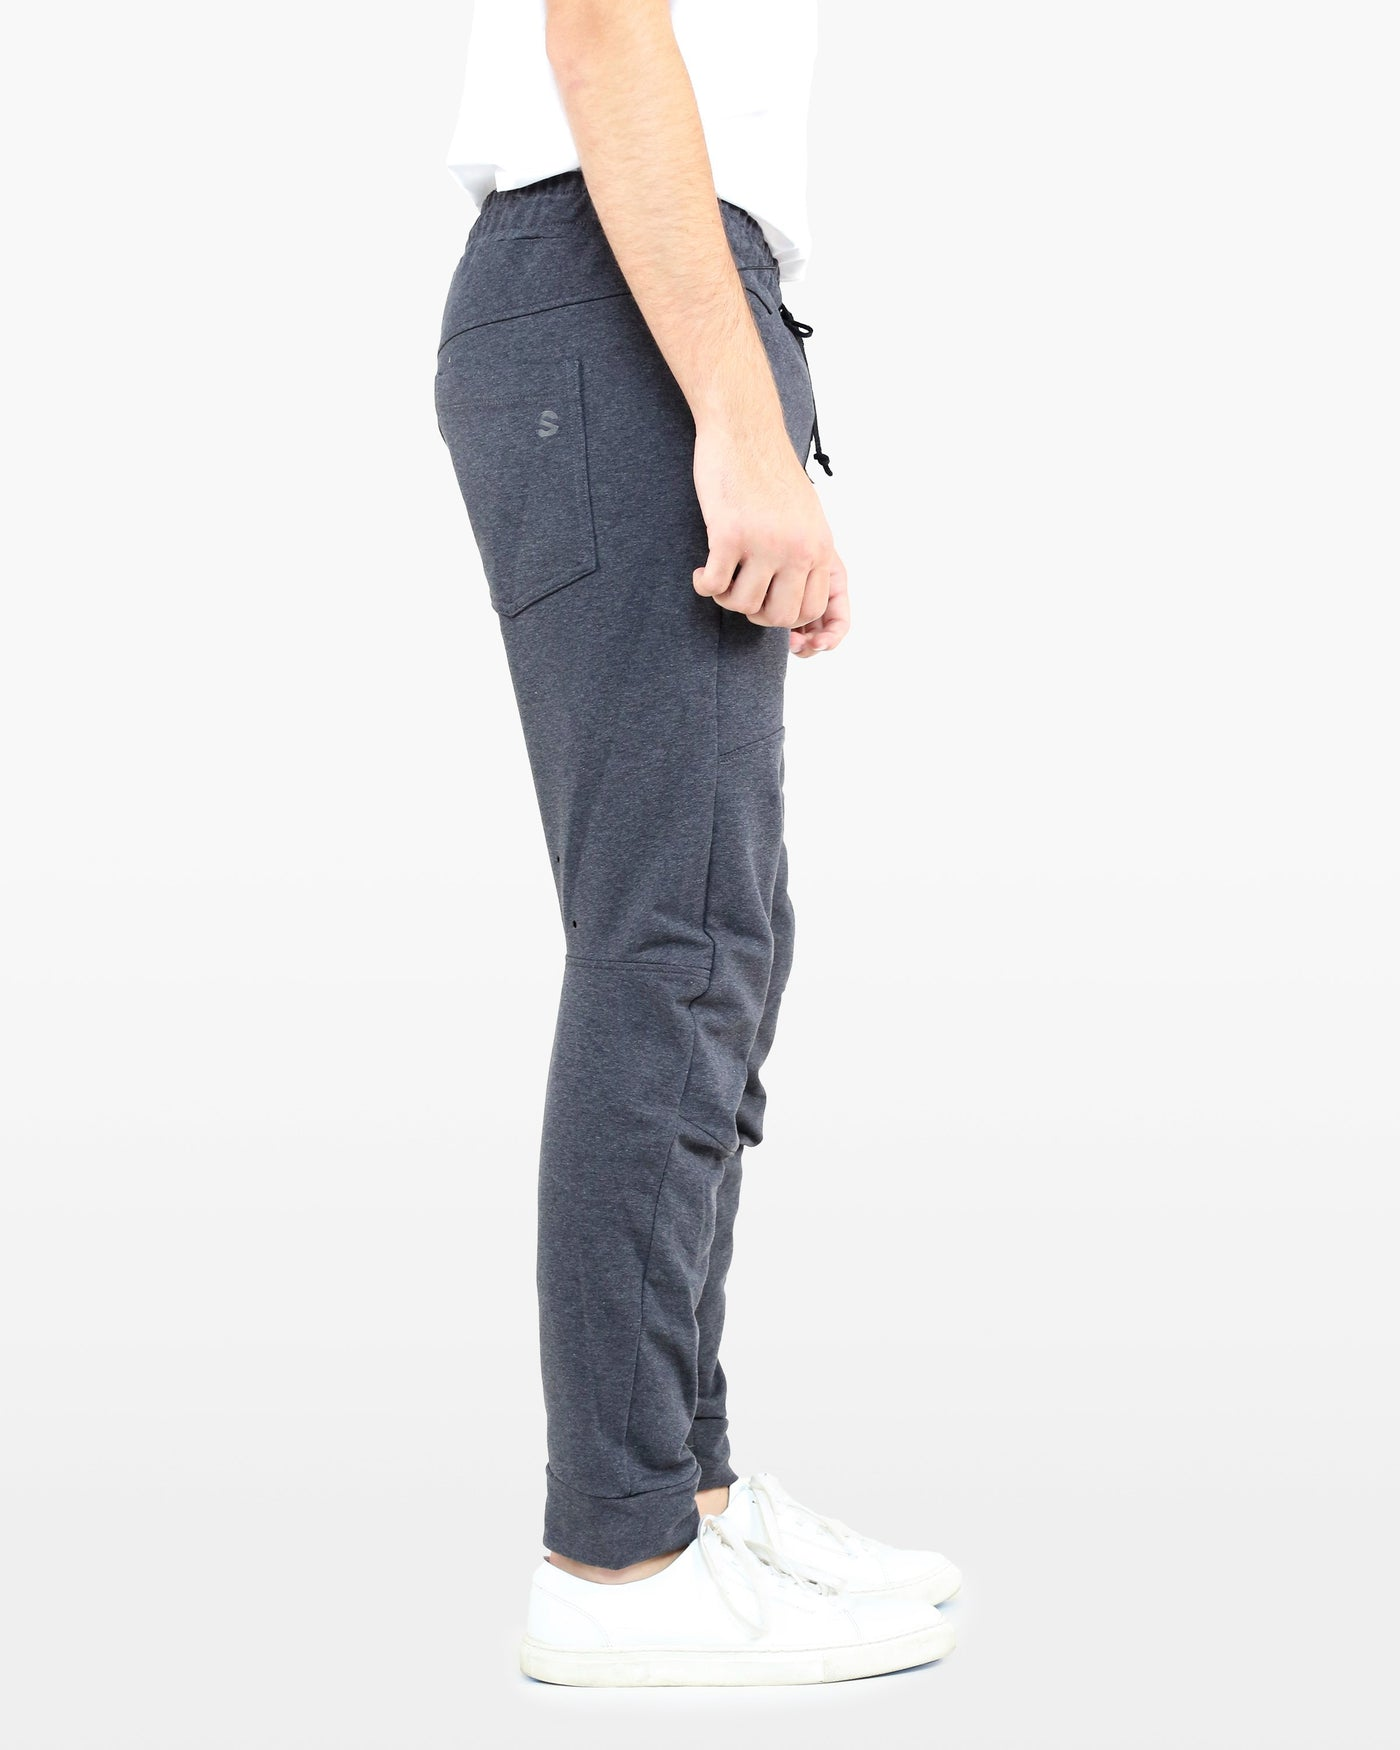 Copernicus Pant DTT in charcoal